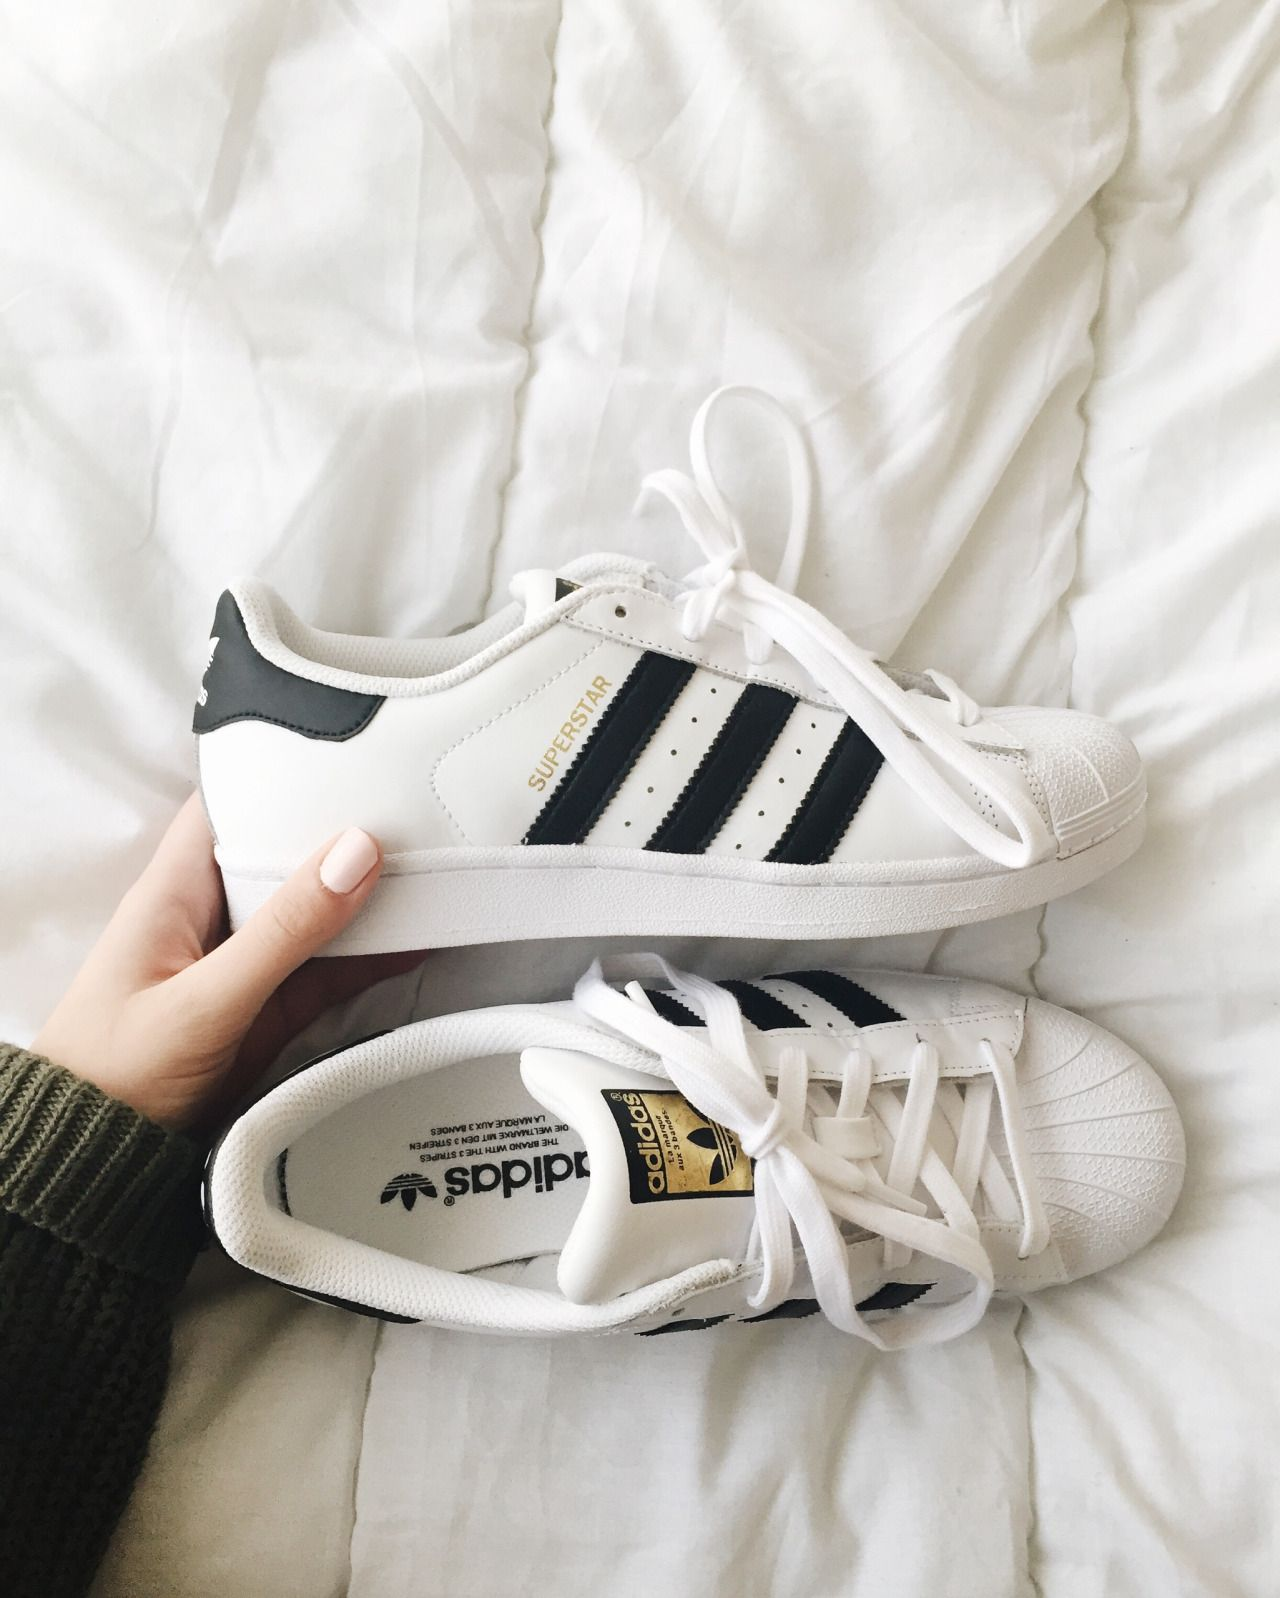 Adidas nmd · Shoes adidas sneakers tumblr adidas shoes black ...